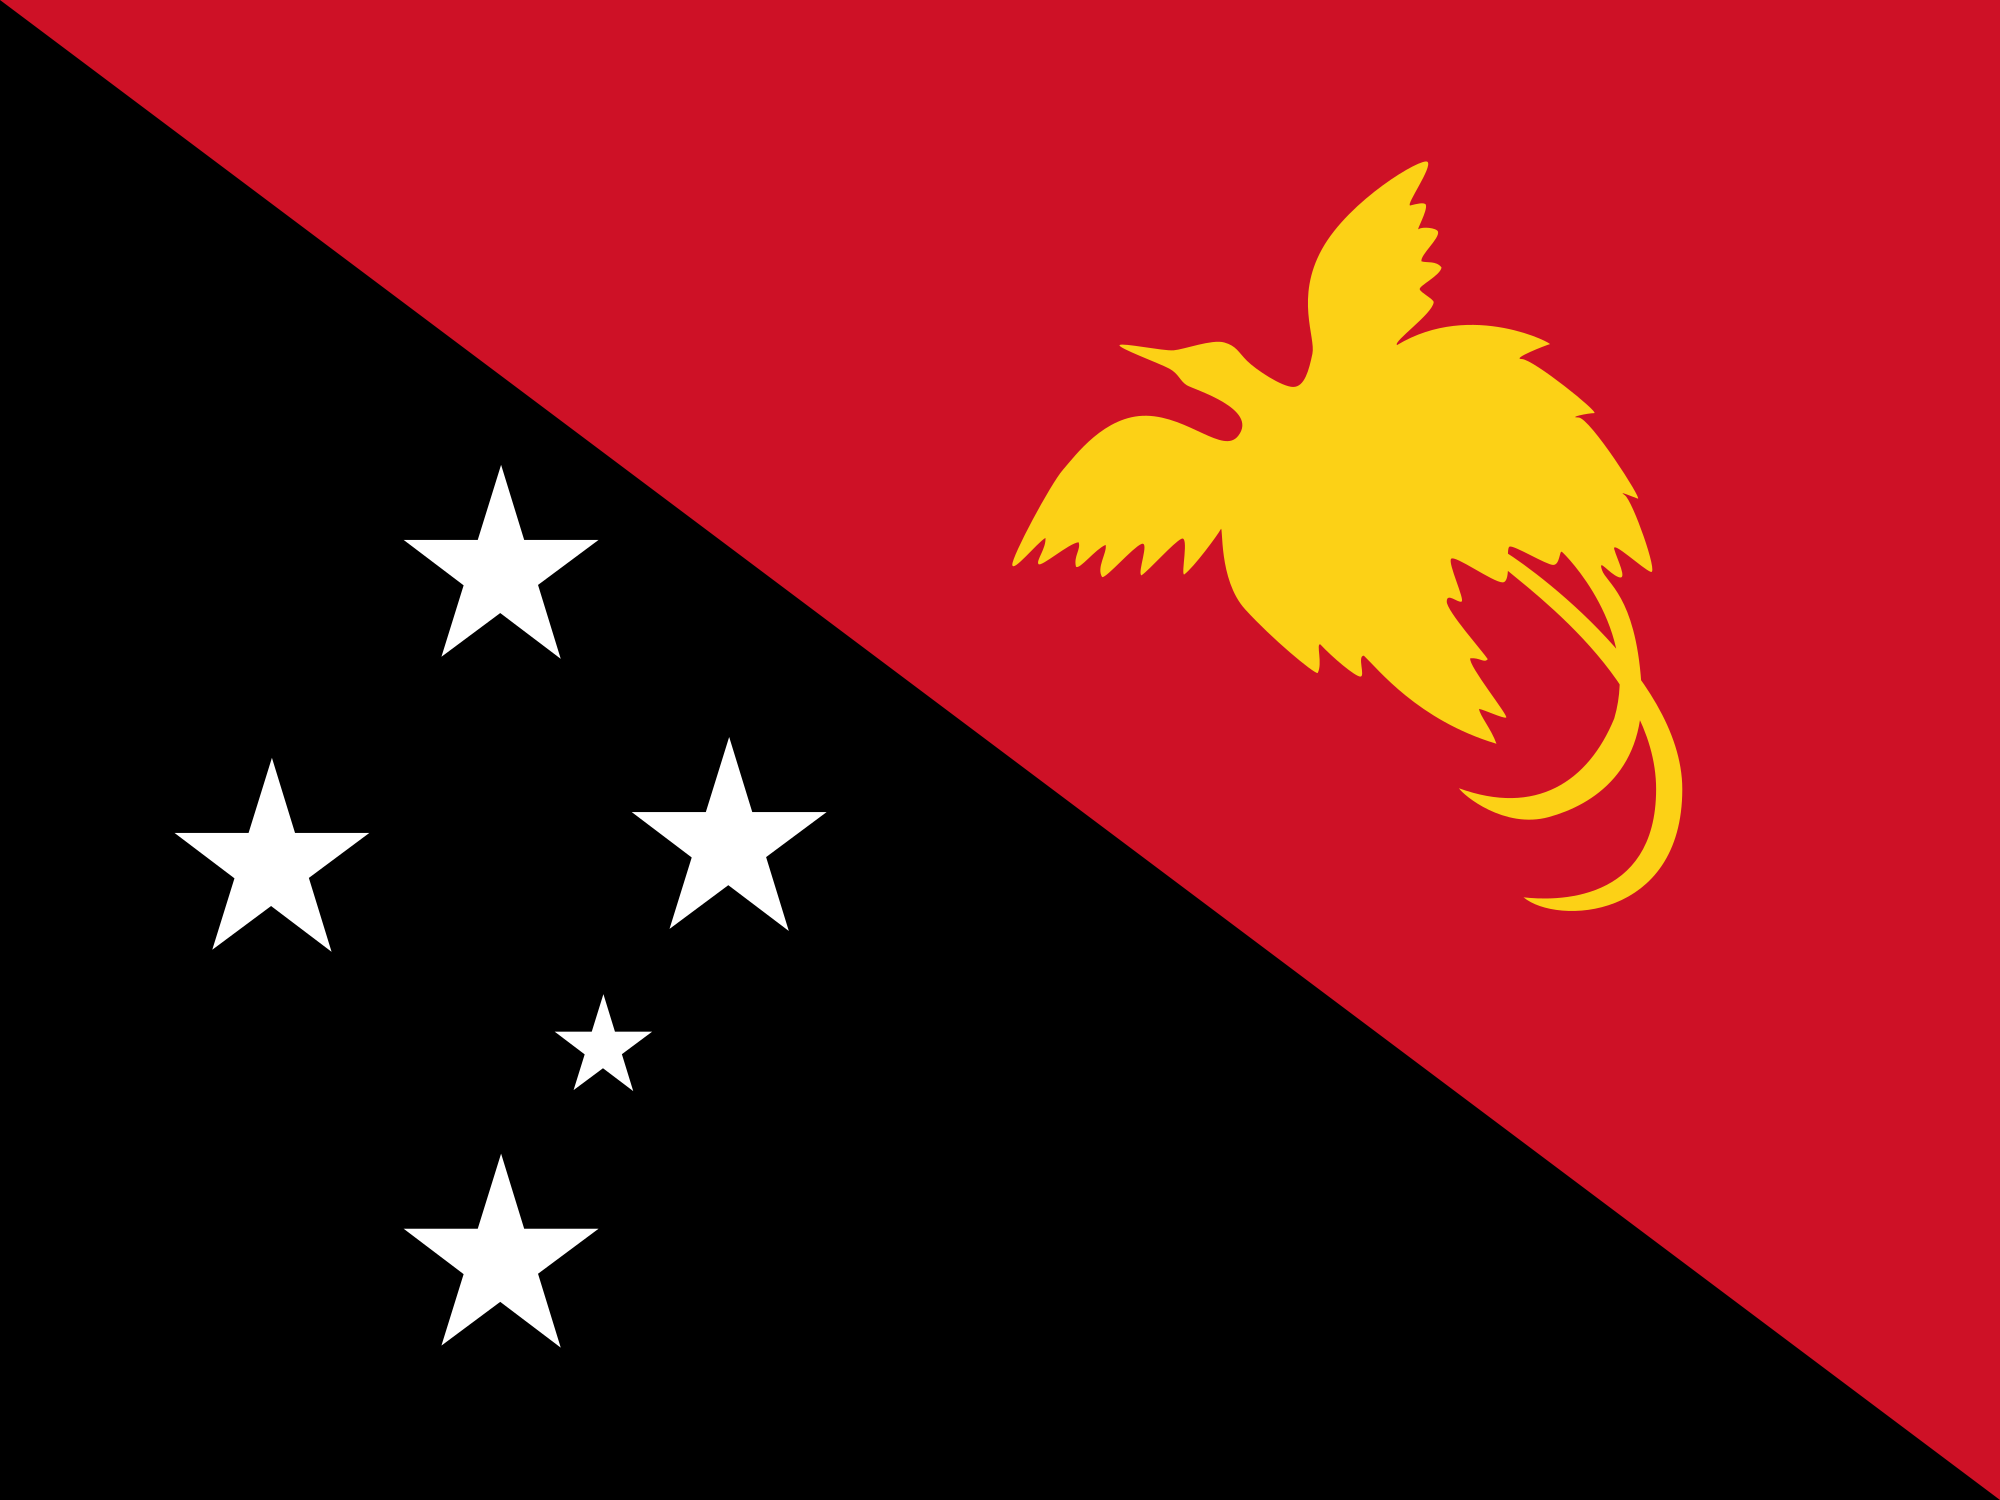 Wallpaper Of The Flag Of Papua New Guinea PaperPull 2000x1500